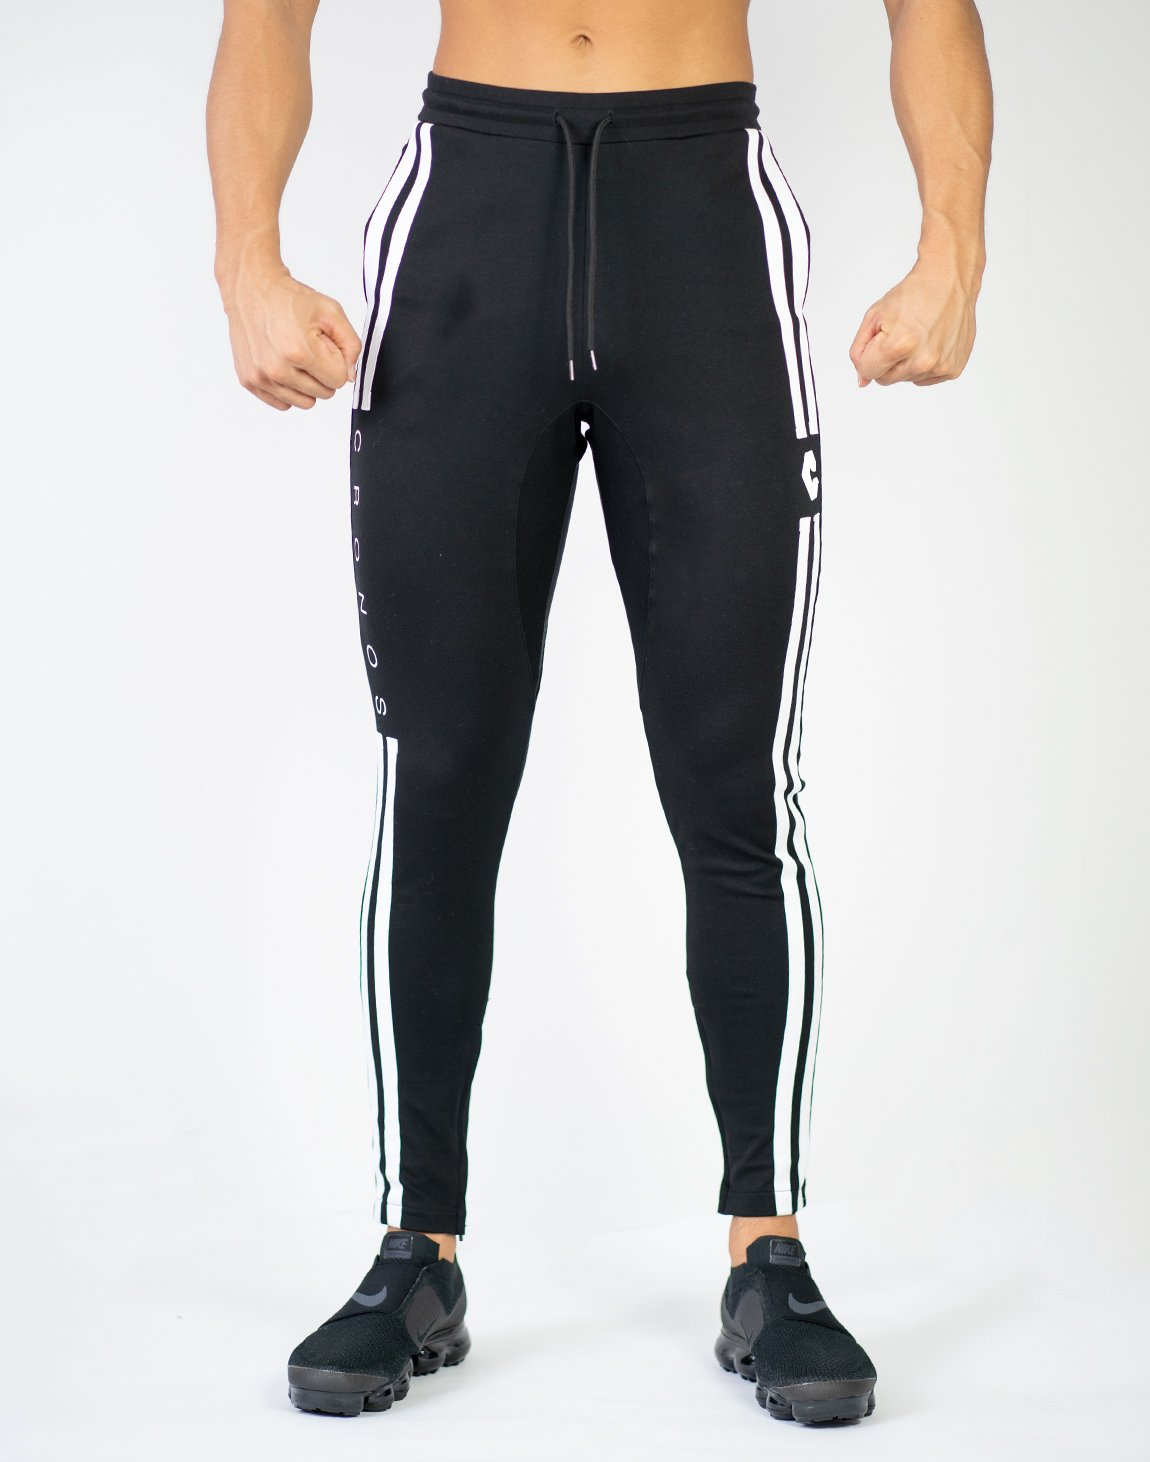 <img class='new_mark_img1' src='https://img.shop-pro.jp/img/new/icons1.gif' style='border:none;display:inline;margin:0px;padding:0px;width:auto;' />CRONOS NEW MODE 2STRIPE PANTS BLACK